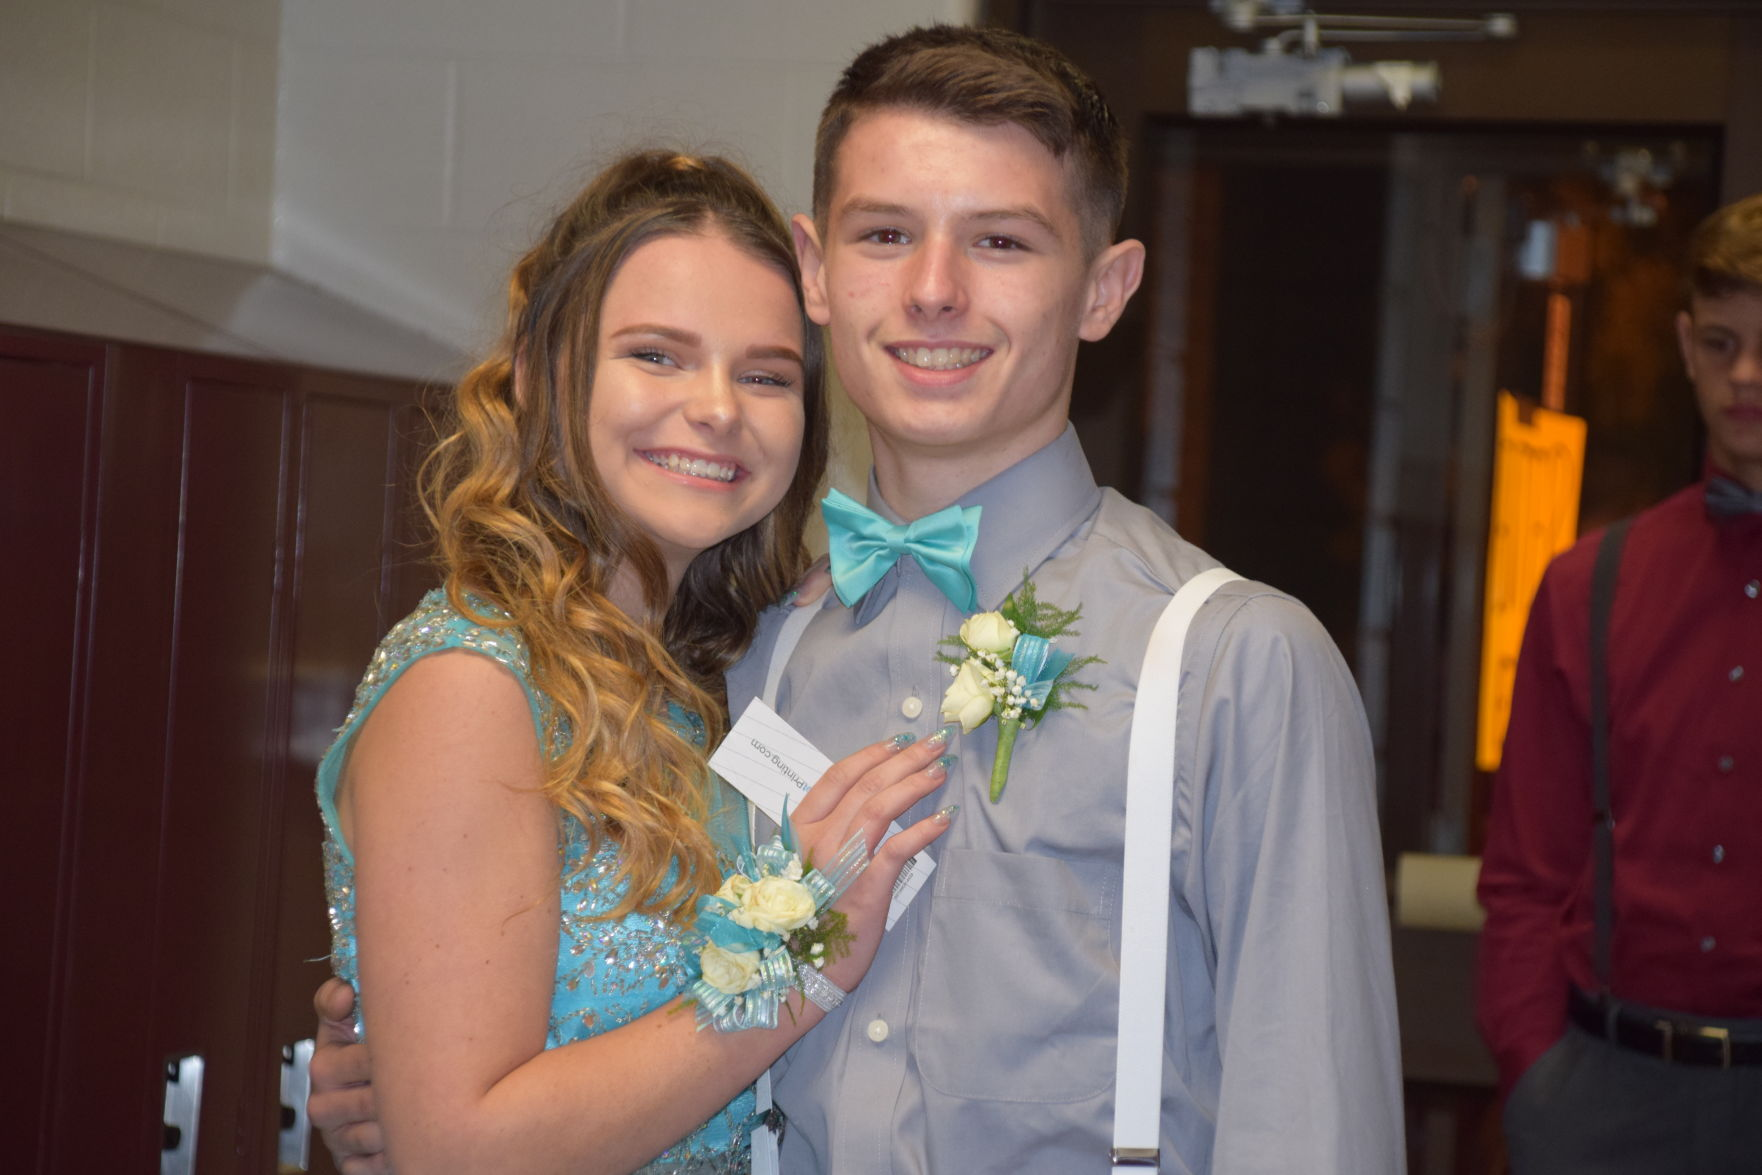 GALLERY: 2018 Crestview High School Homecoming